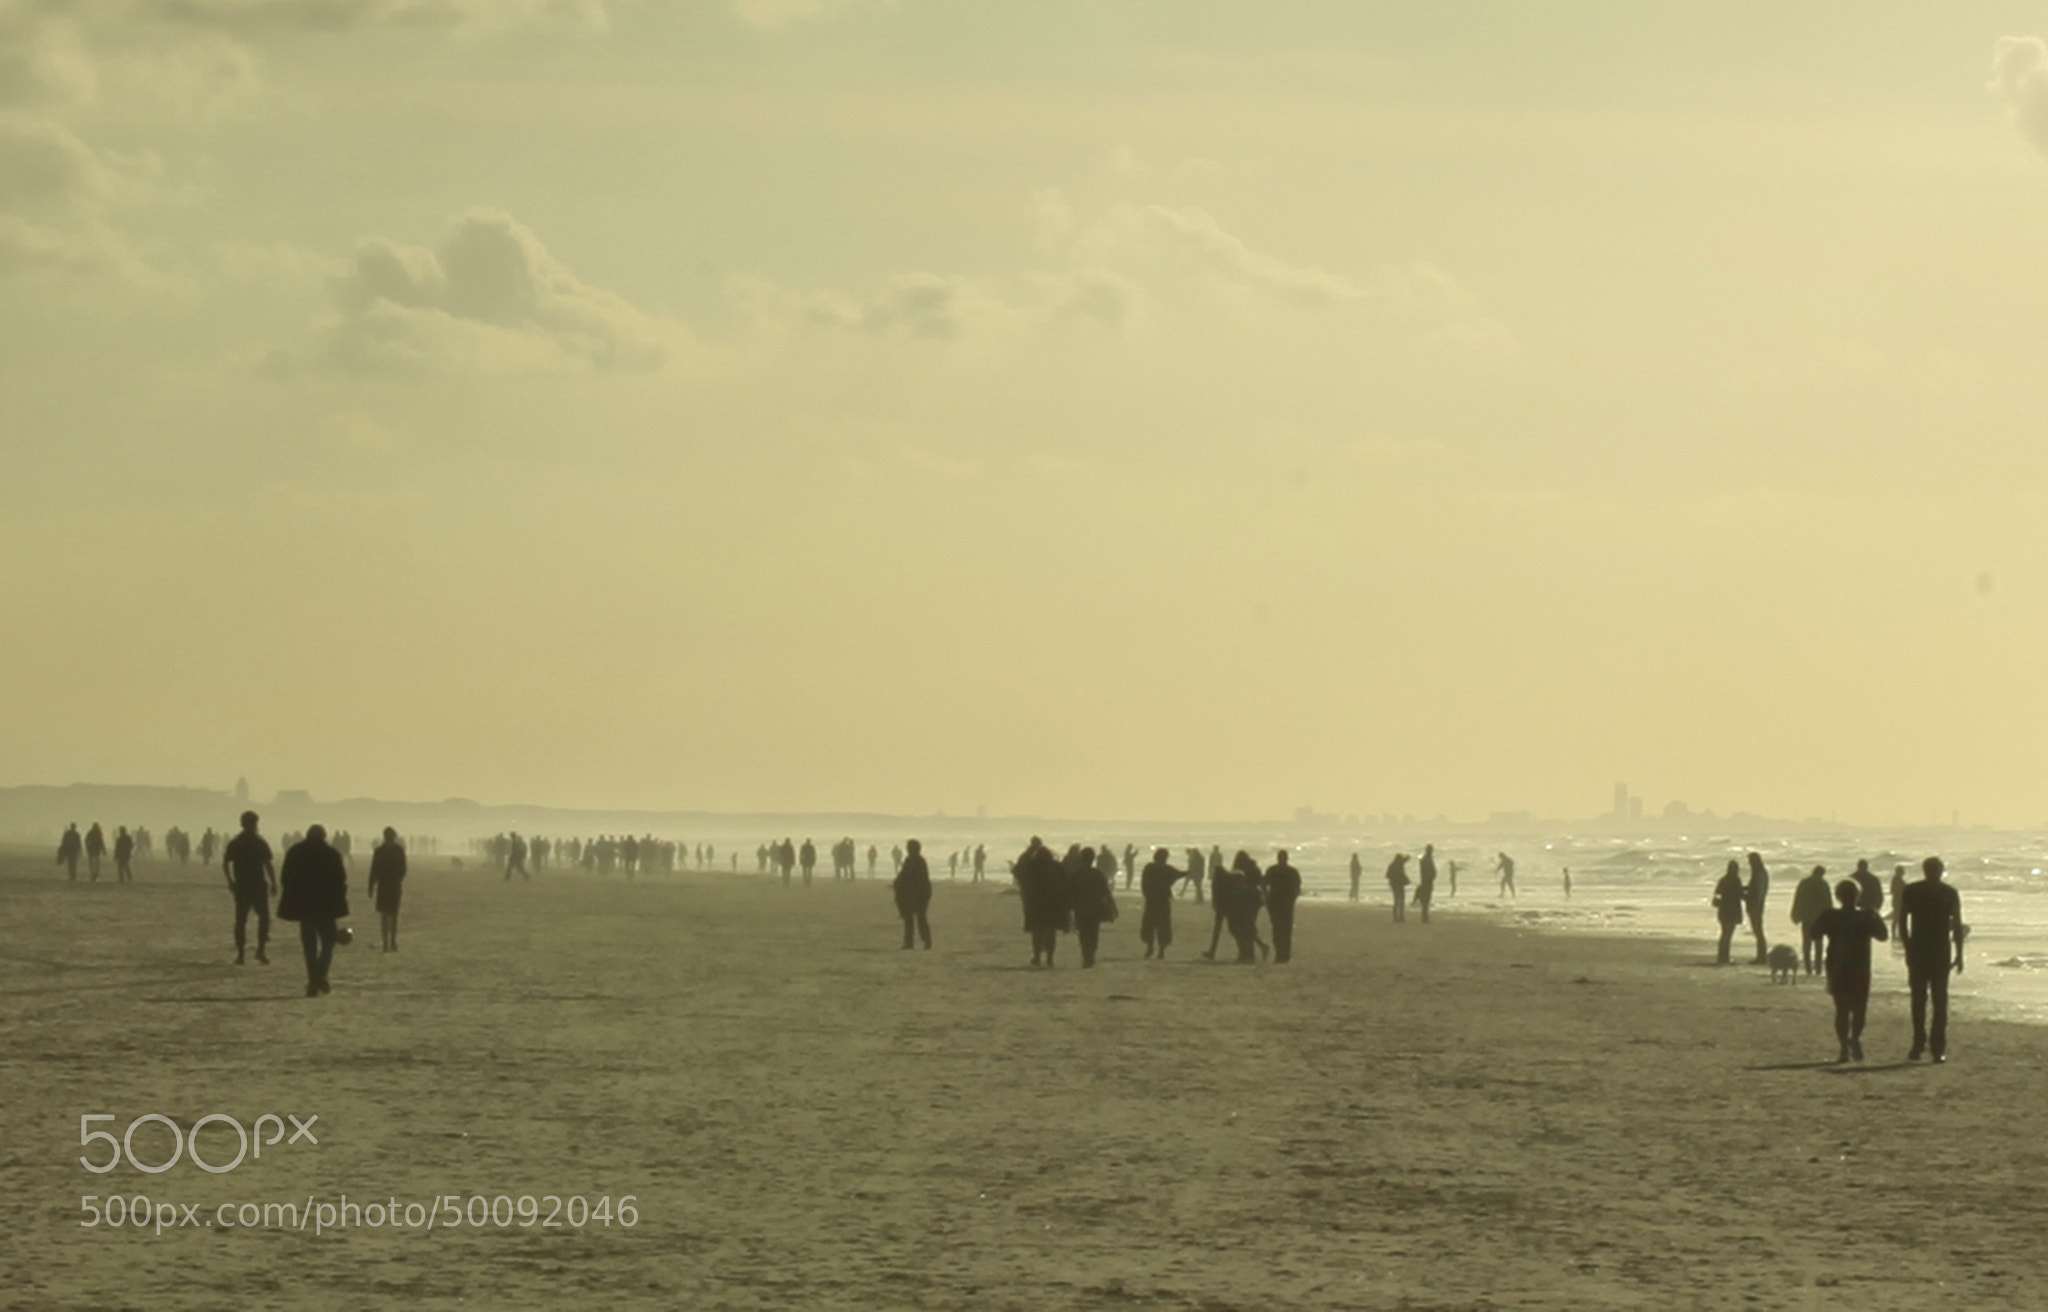 Photograph People by rnkvnm on 500px